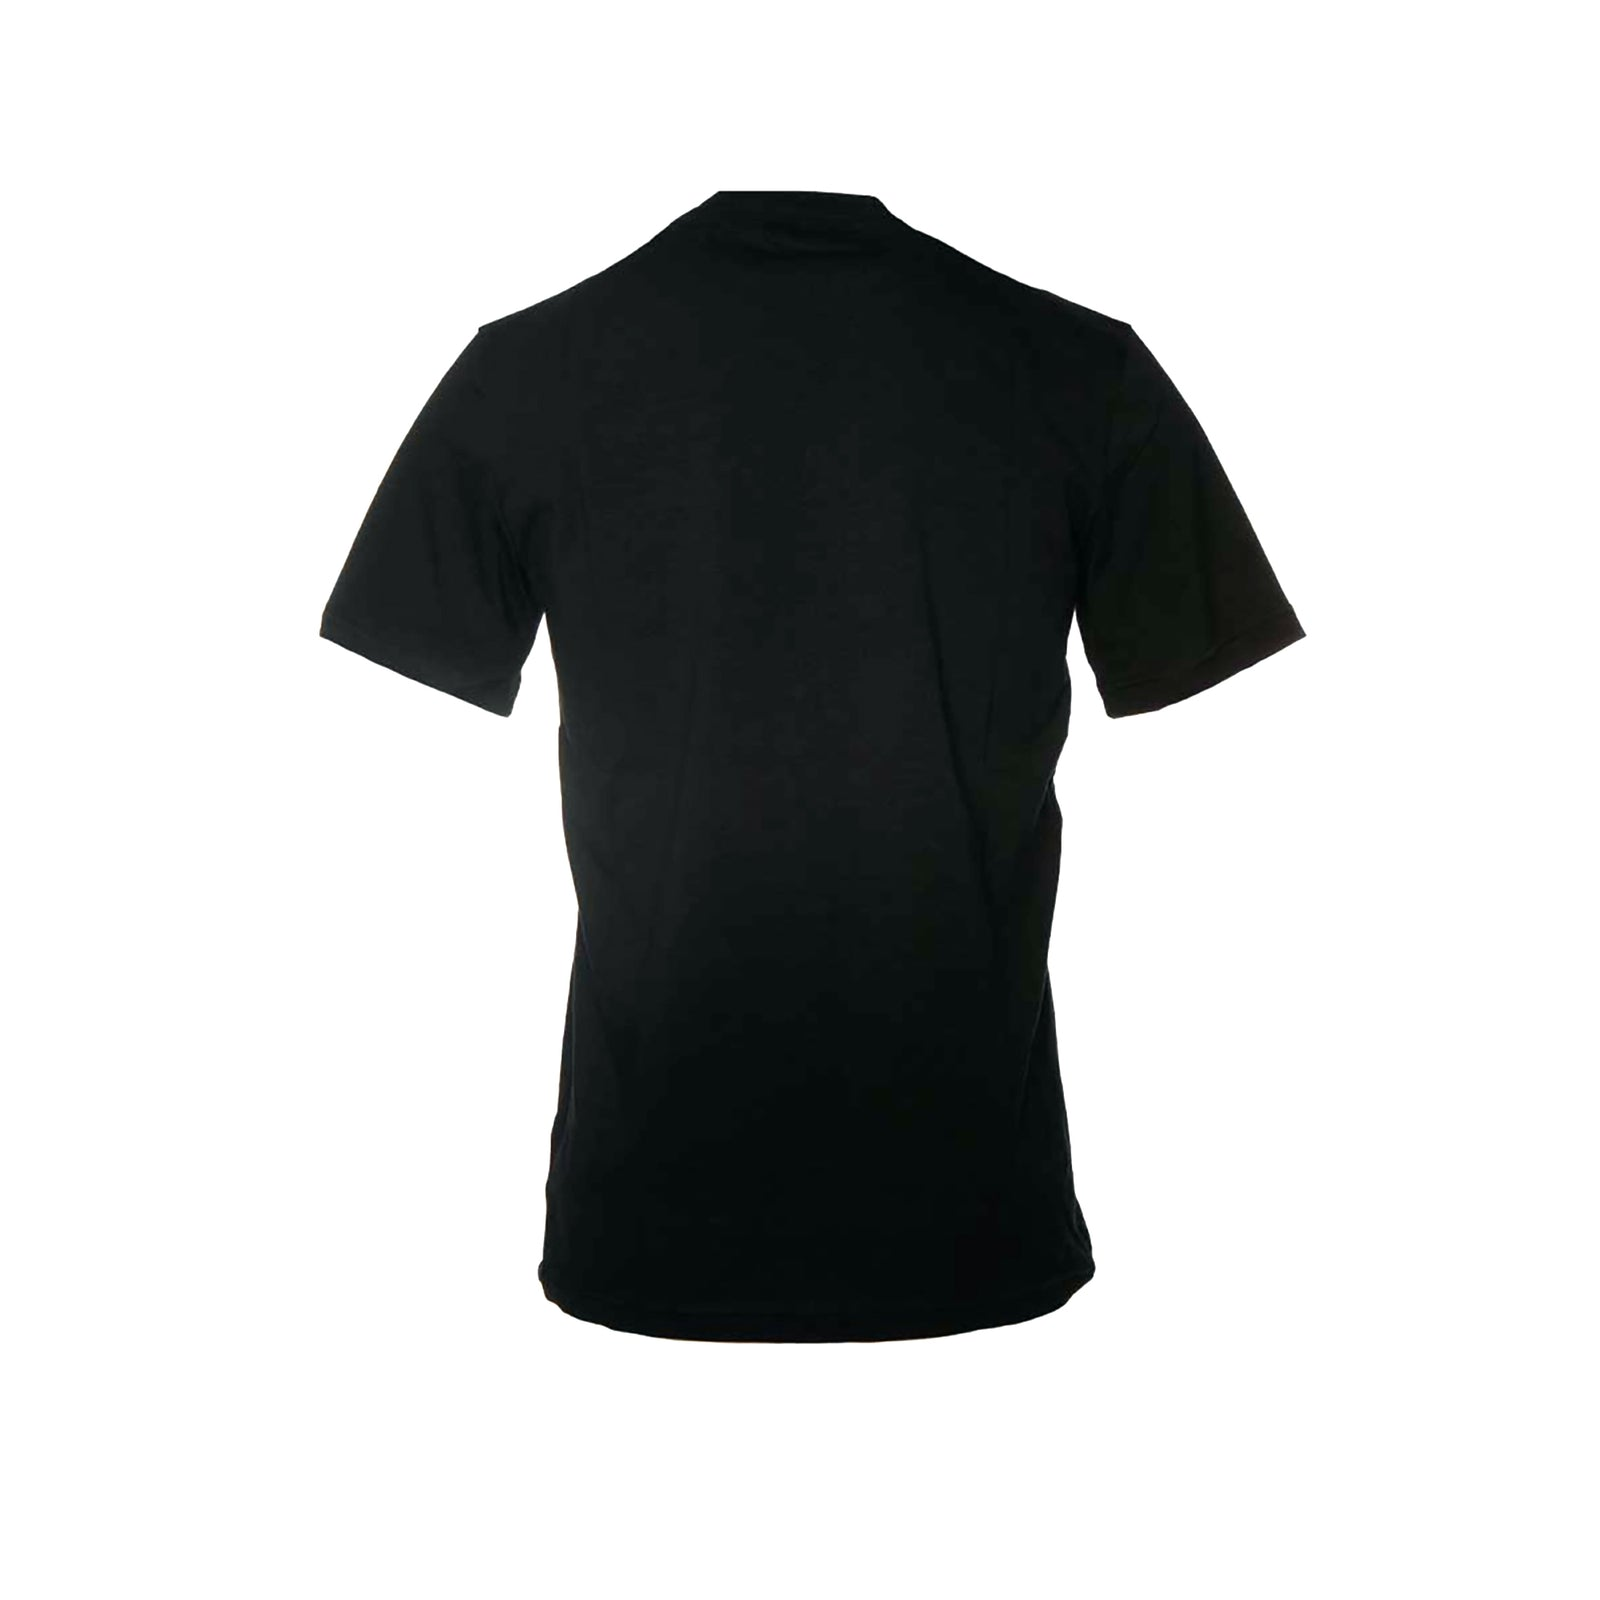 Bricktown Small Burger Tee Black